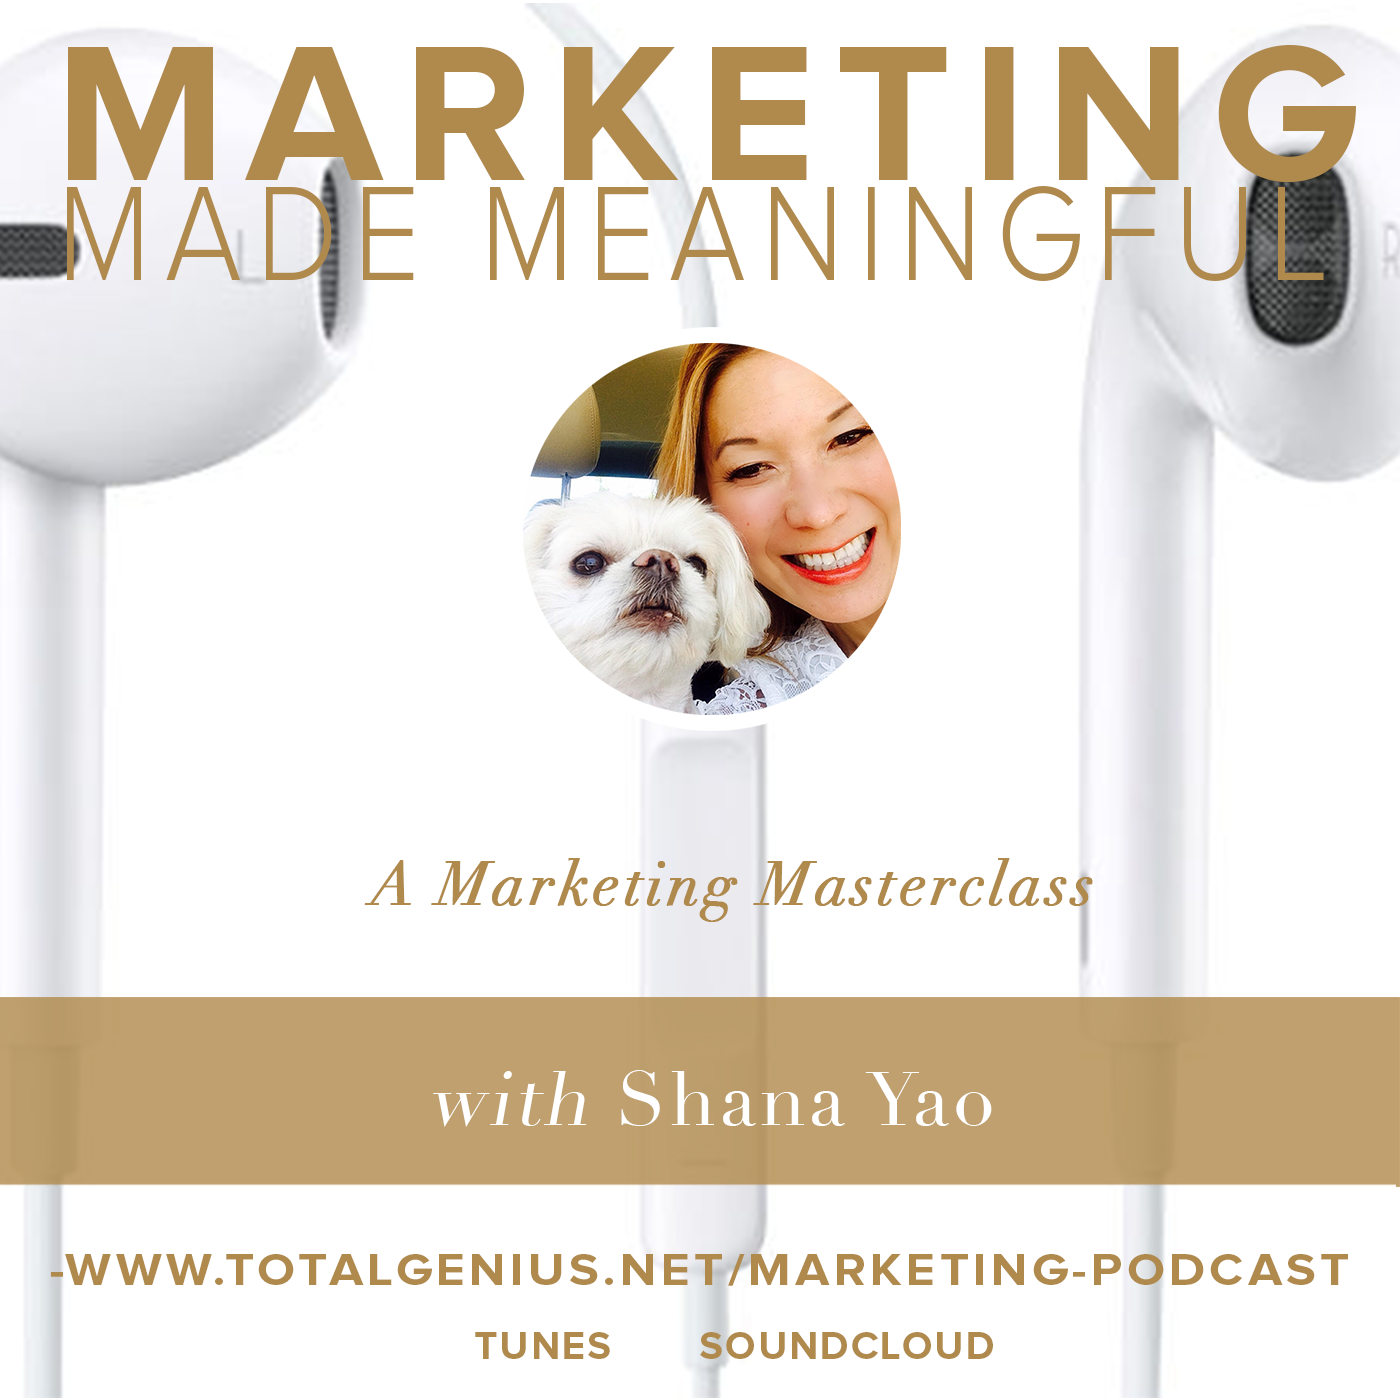 Marketing Made Meaningful podcast, itunes, soundcloud, business